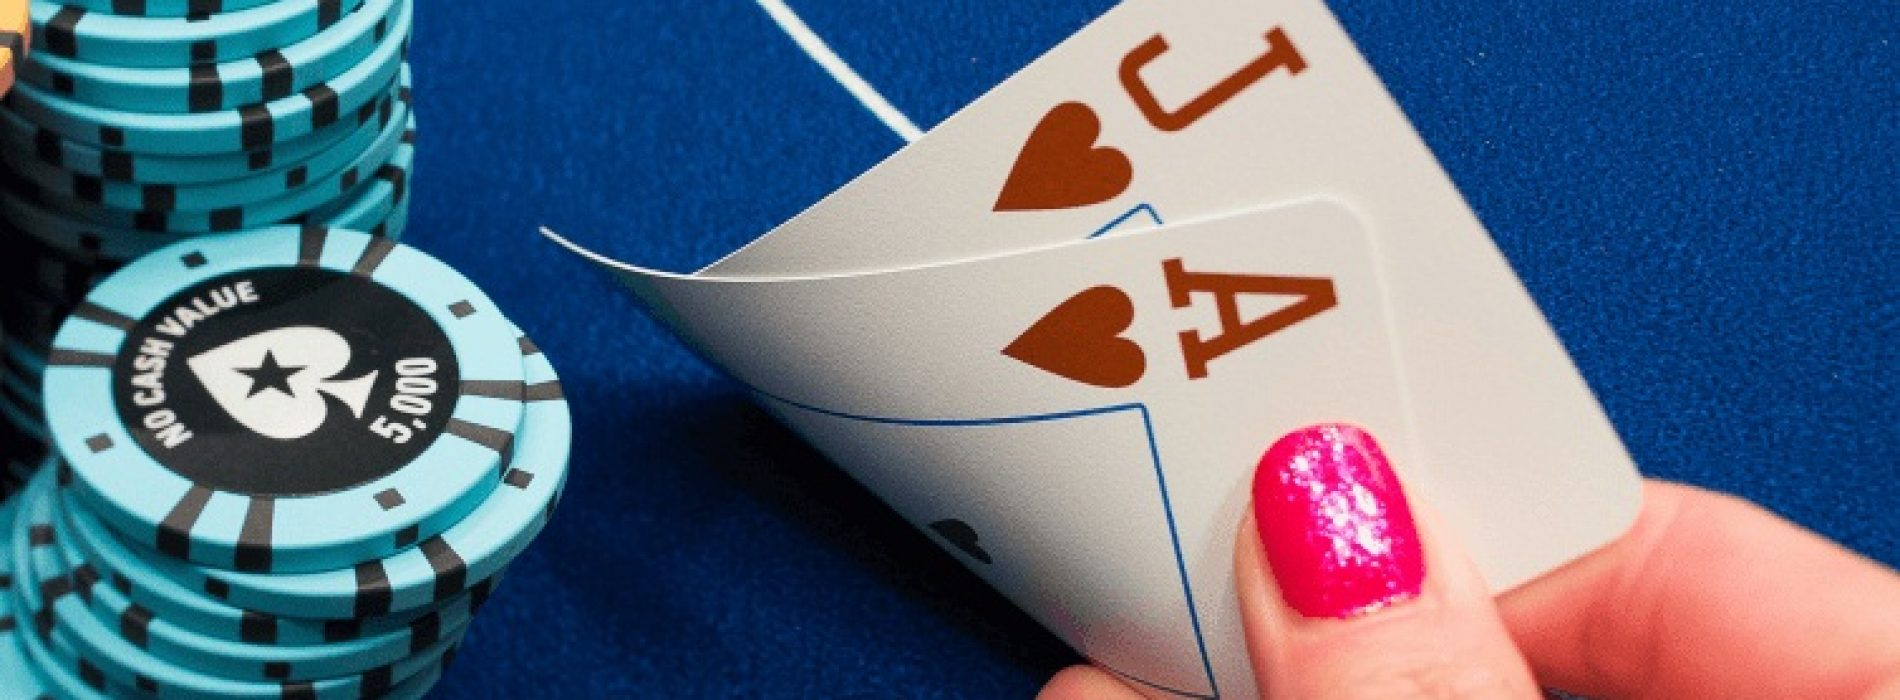 Understanding Expected Value At Poker